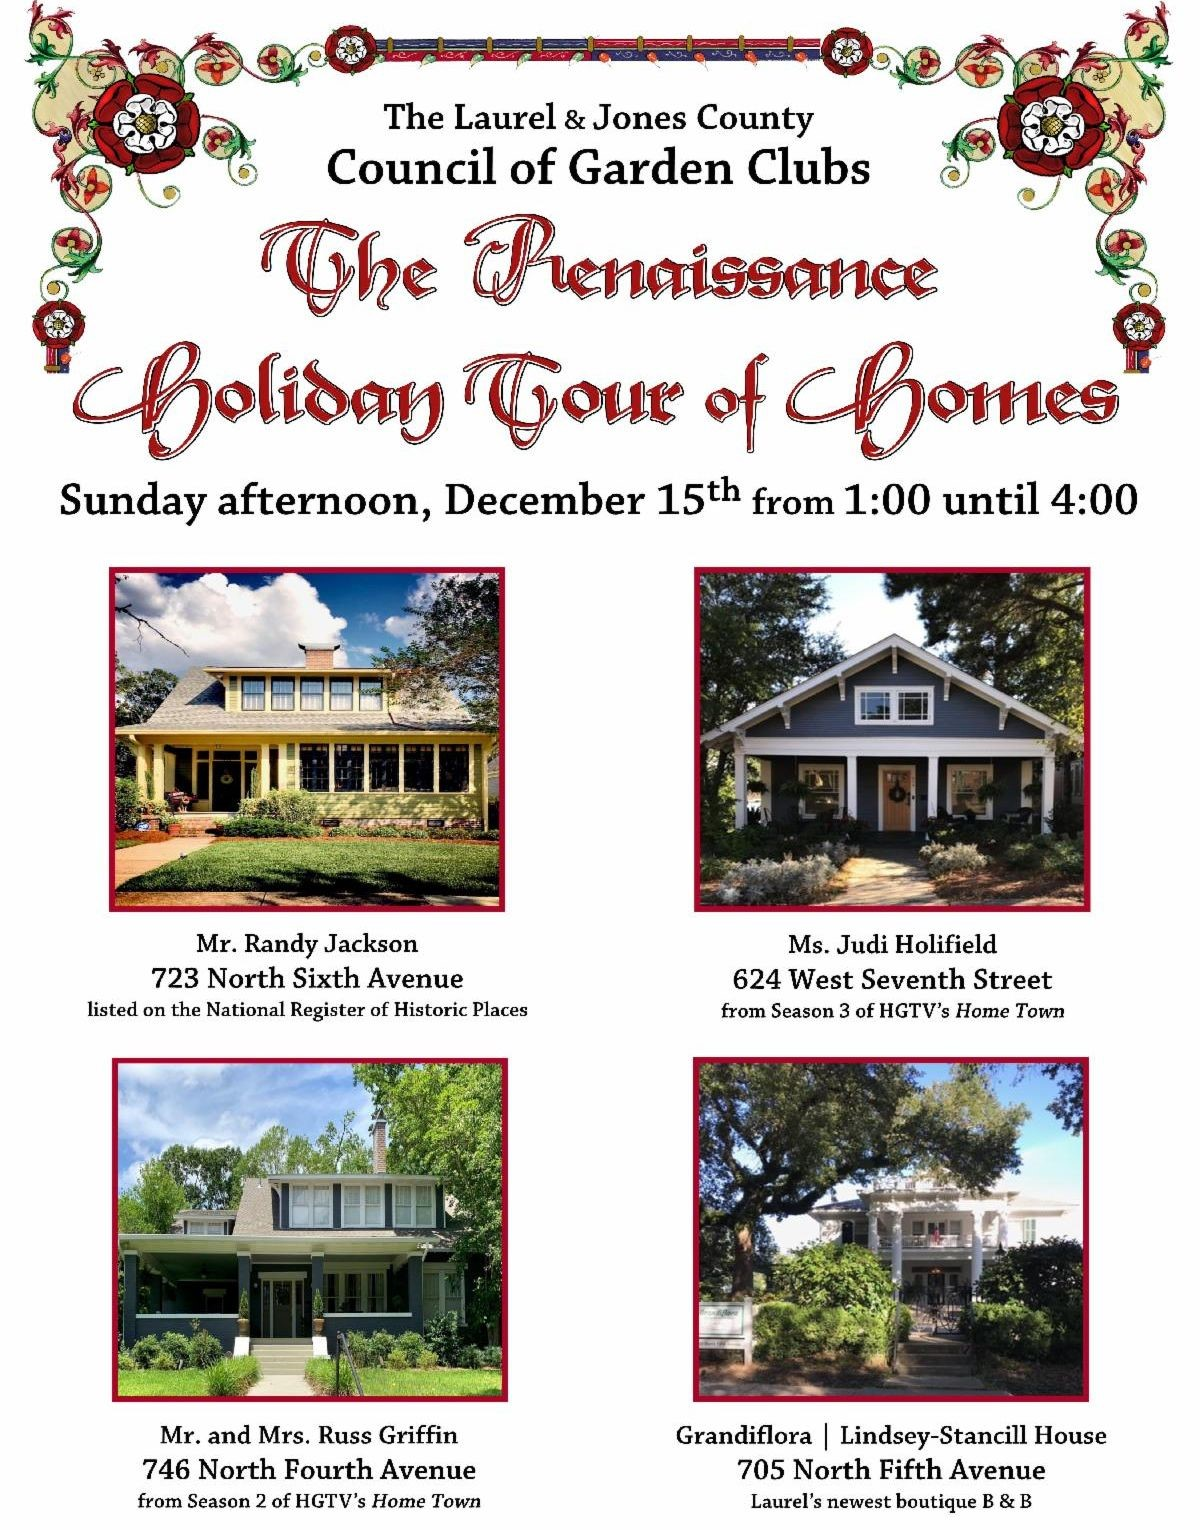 The City of Laurel, The Renaissance Holiday Tour of Homes